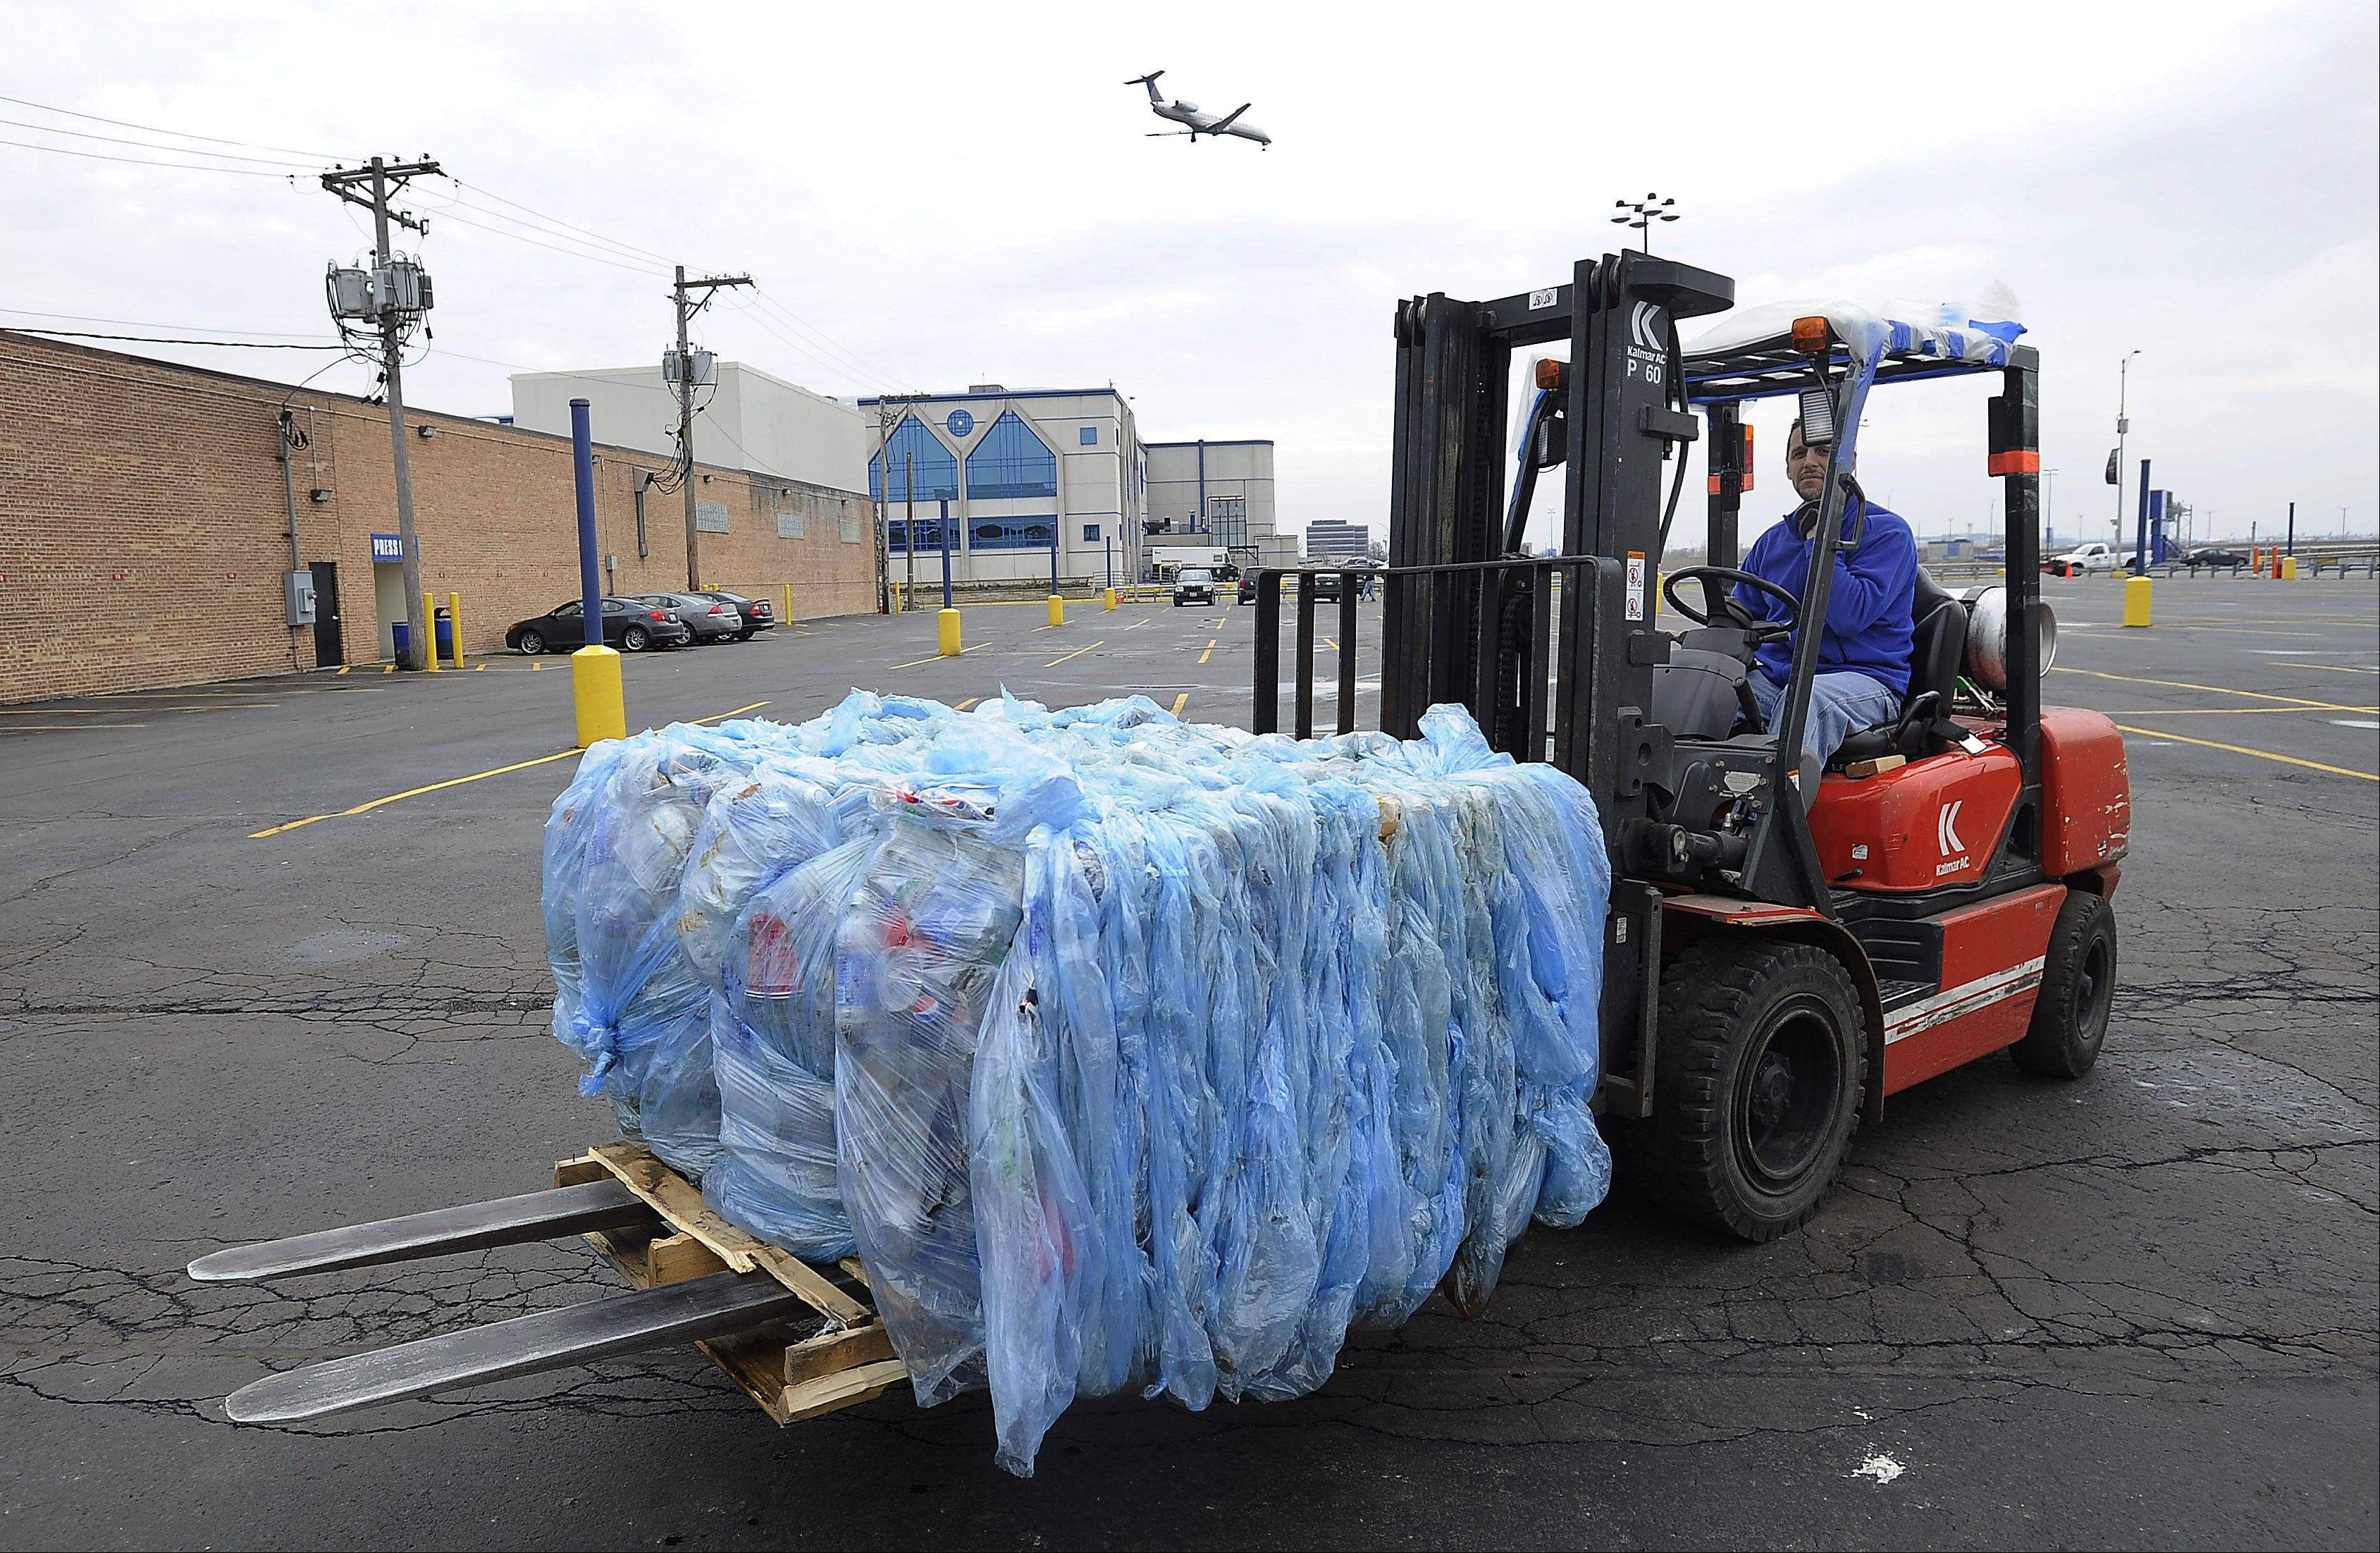 Jim Napoli of Rosemont, a carpenter at the Allstate Arena, hauls waste away from the arena.